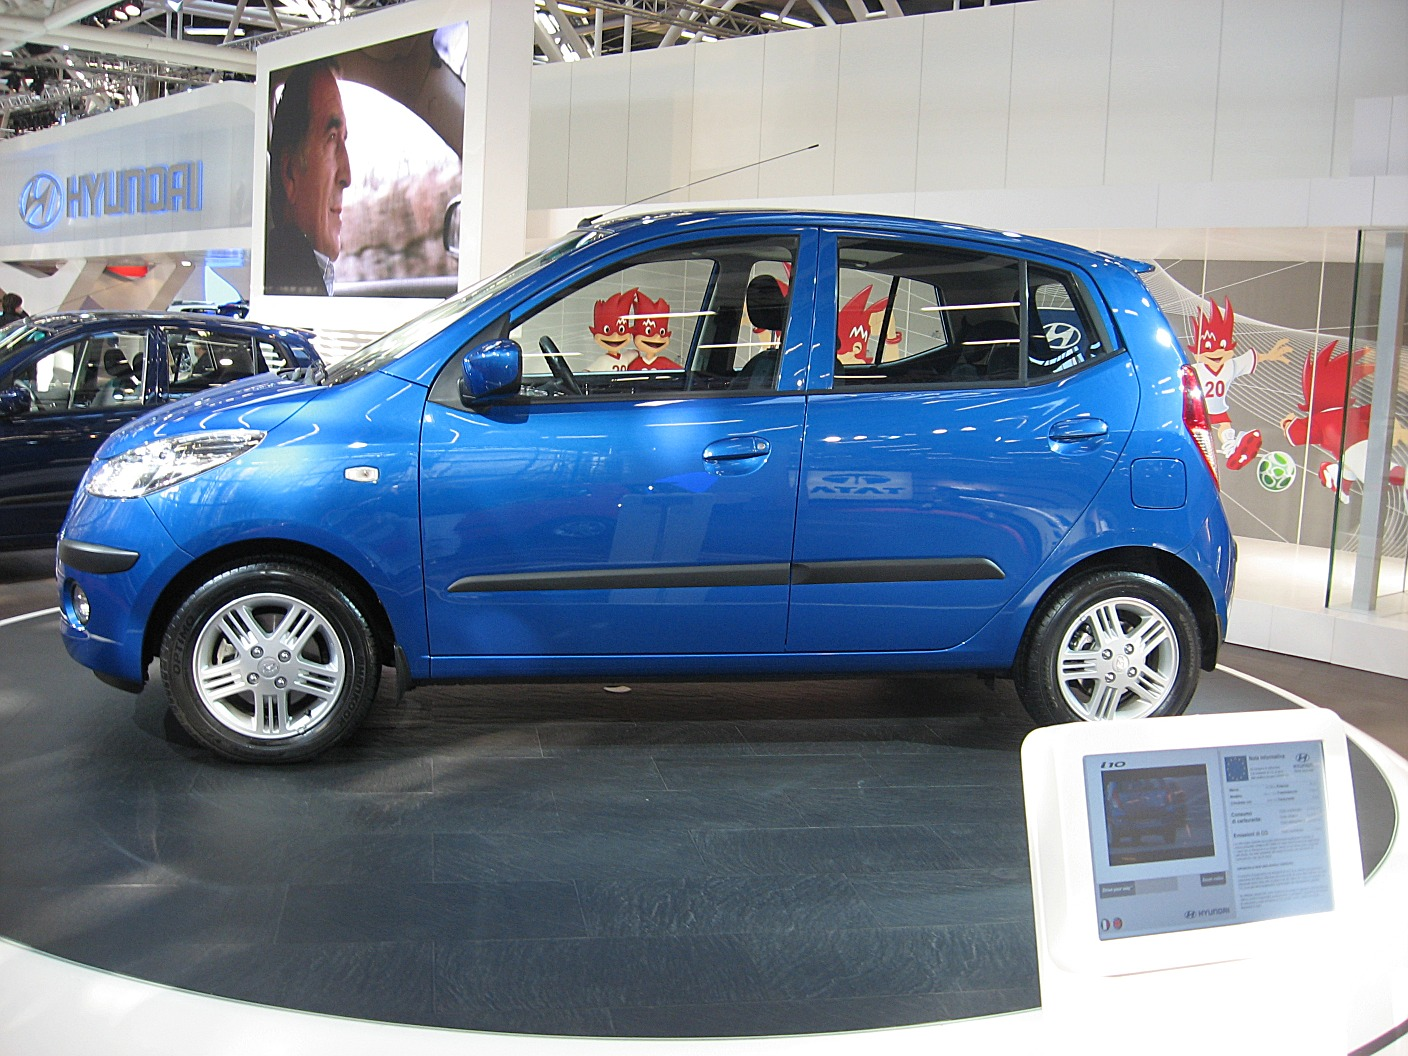 http://upload.wikimedia.org/wikipedia/commons/2/20/Hyundai_i10_Side-view.JPG